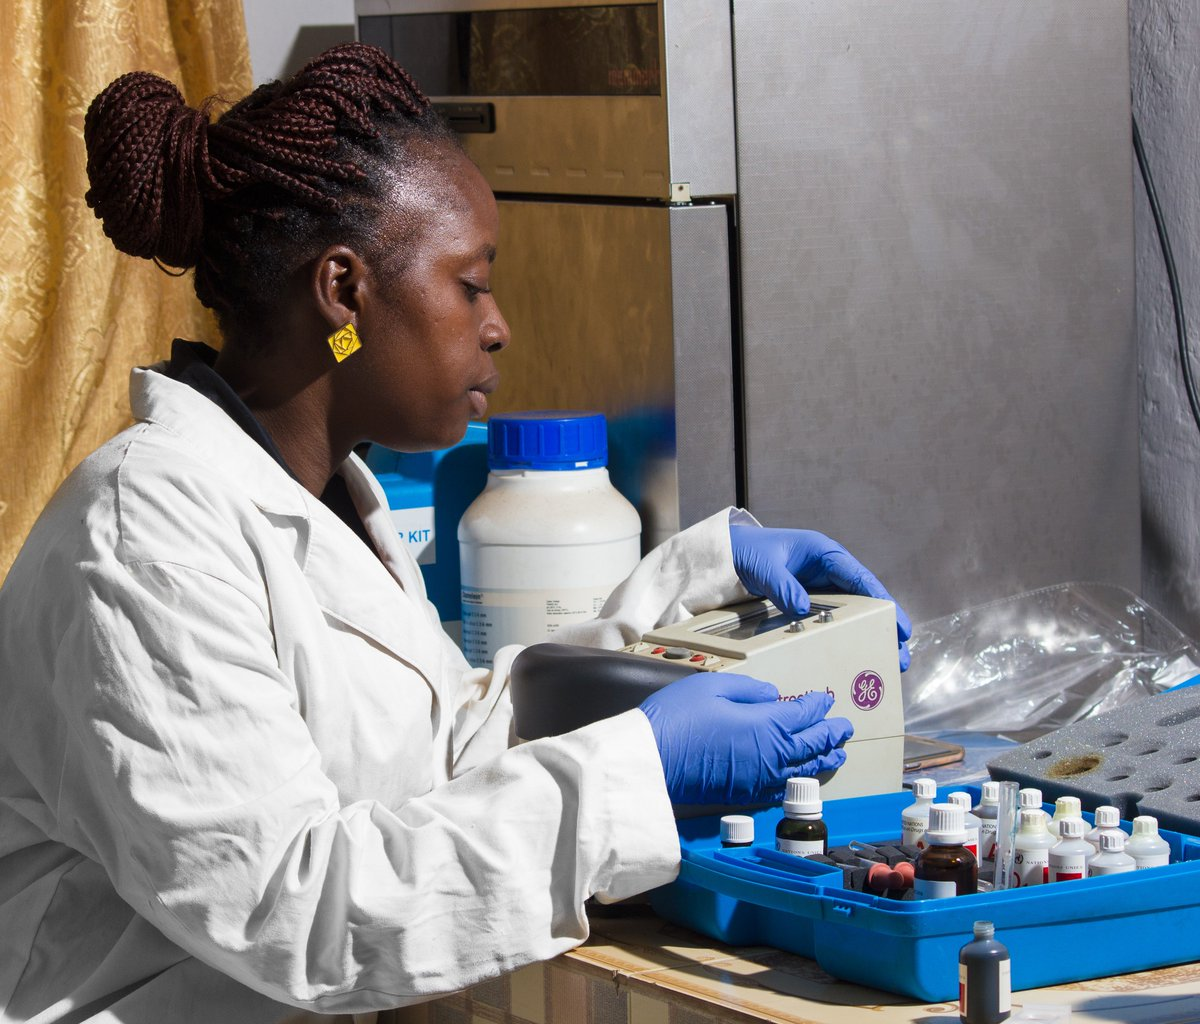 Techwomen On Twitter Eloftheday Ernestine Of Sierraleone Works As A Forensic Analyst The Sierraleone Police Department She Is Eager To Share Her Expertise In Scientific Investigation Drug Analysis Presentation Of